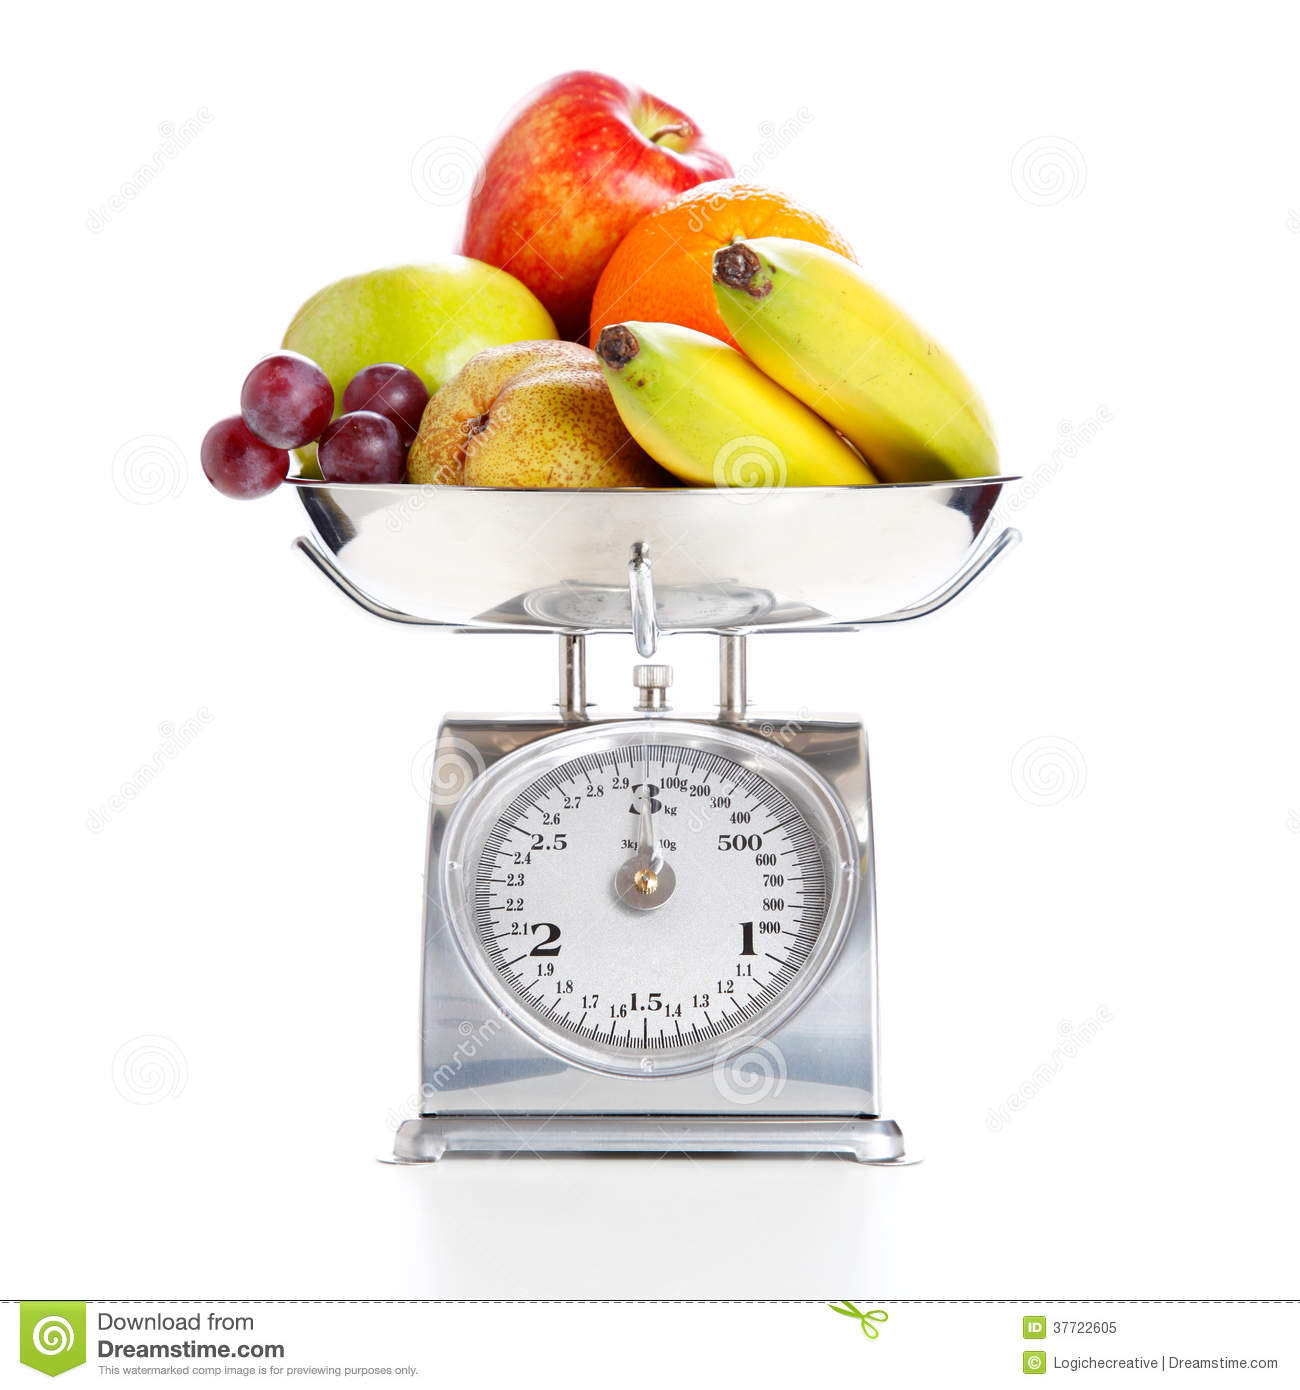 Vegetables And Fruits On A Weighing Scale Stock Image